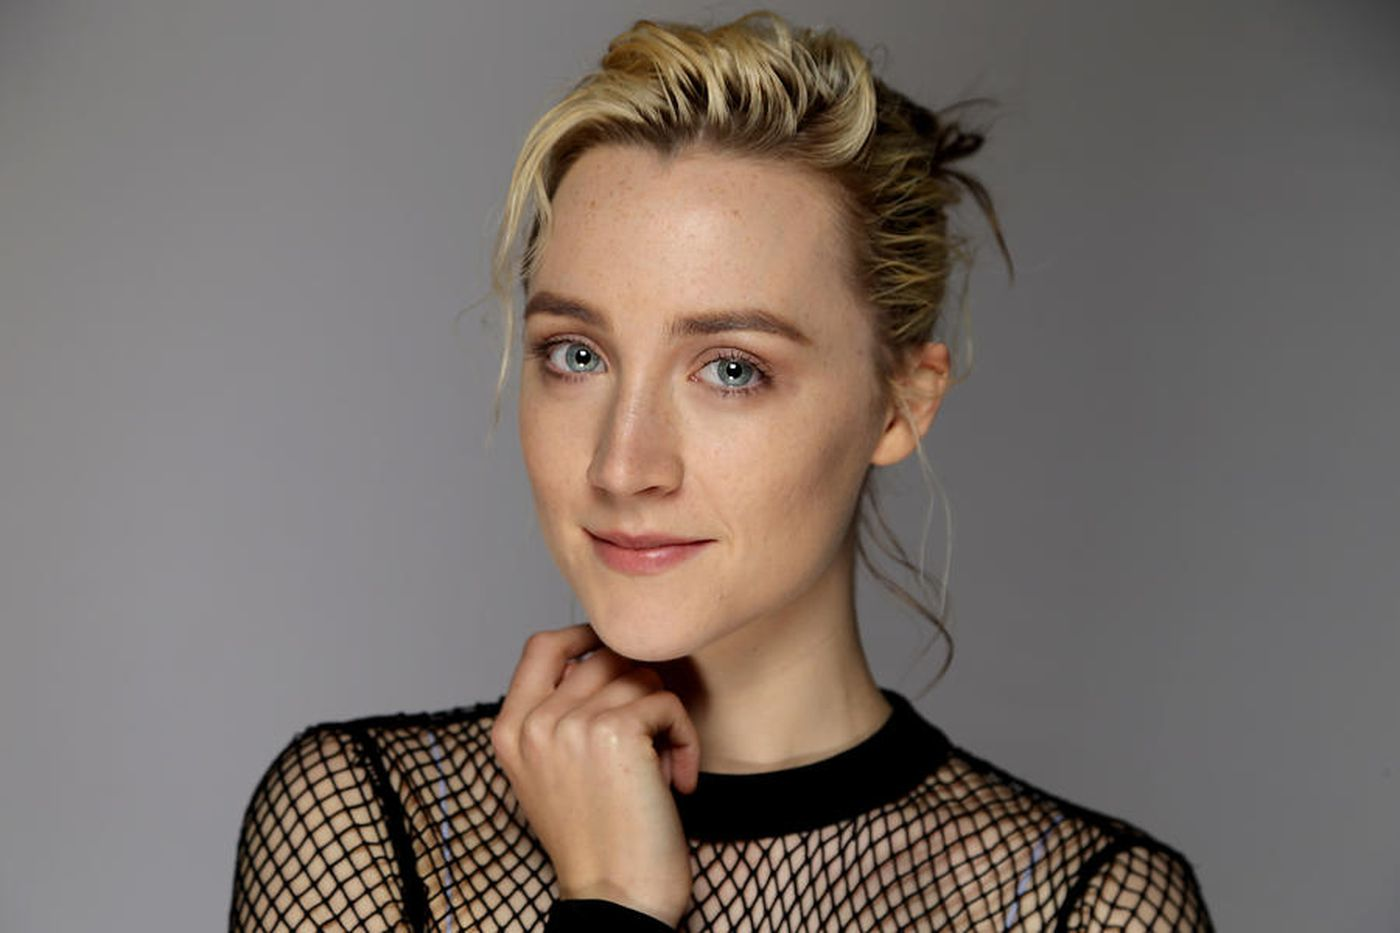 Saoirse Ronan Pics - Saoirse Ronan Net Worth, Movies, Family, Boyfriend, Pictures and Wallpapers